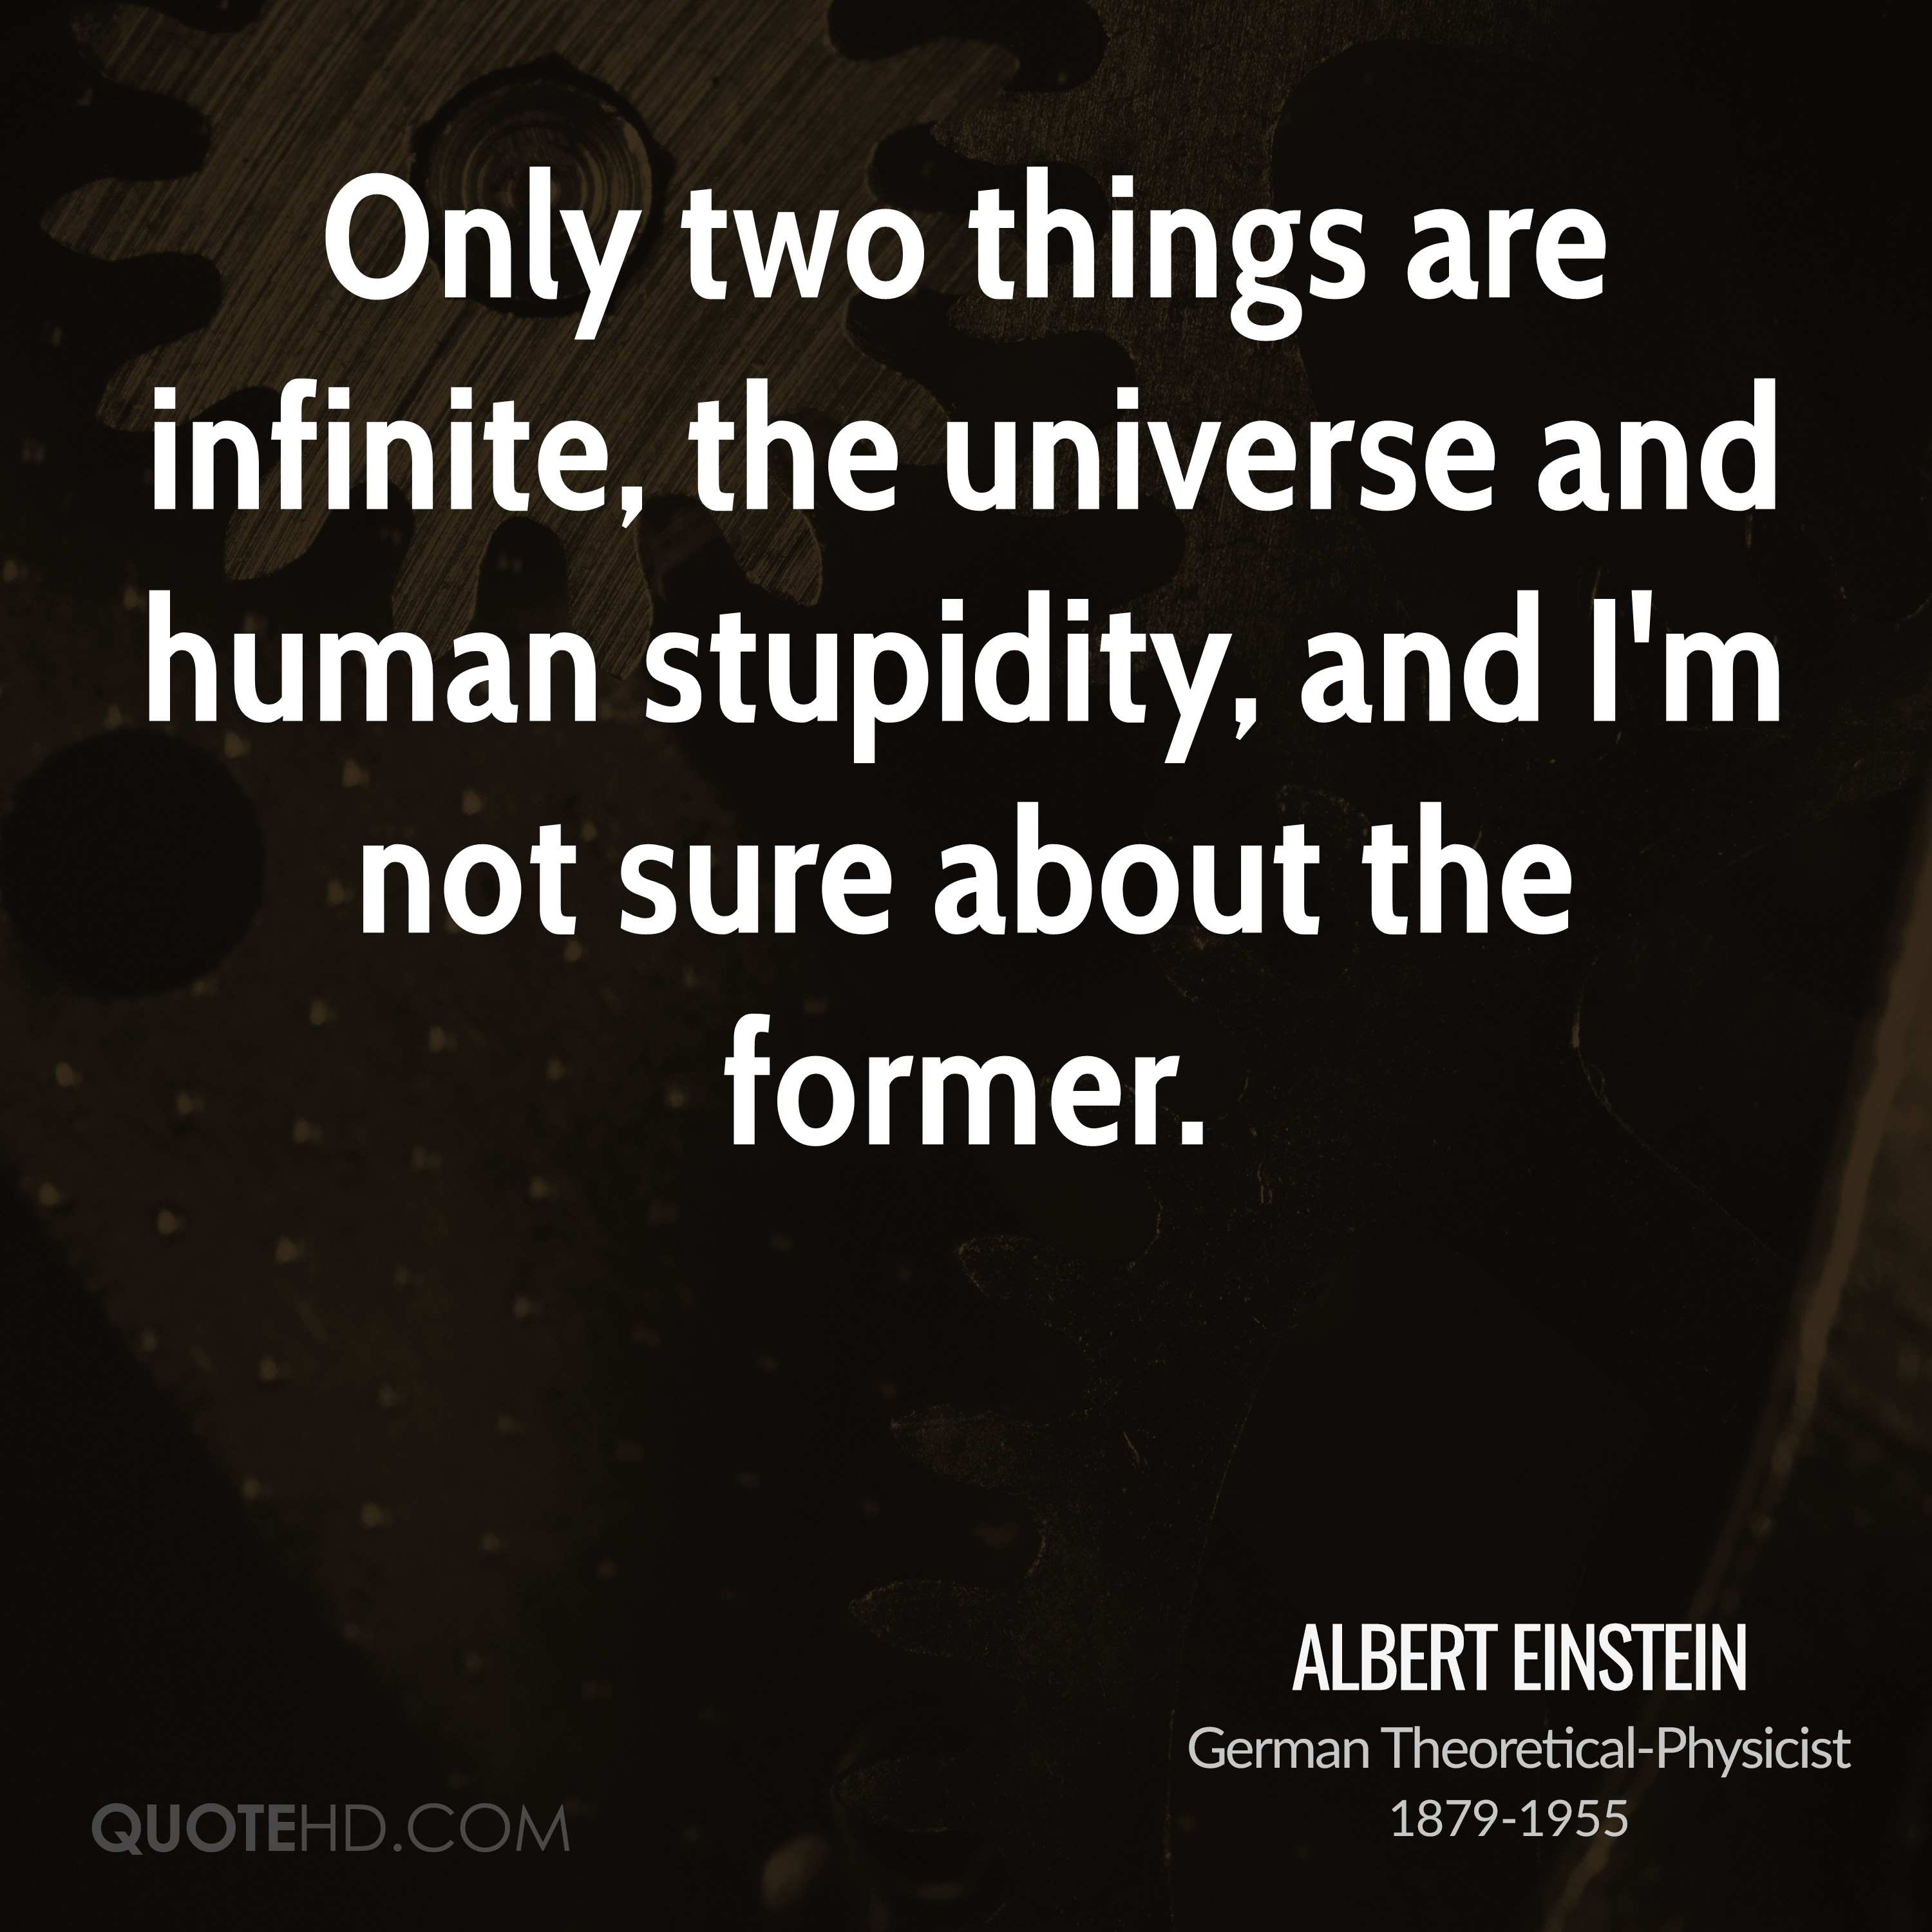 Only two things are infinite, the universe and human stupidity, and I'm not sure about the former.